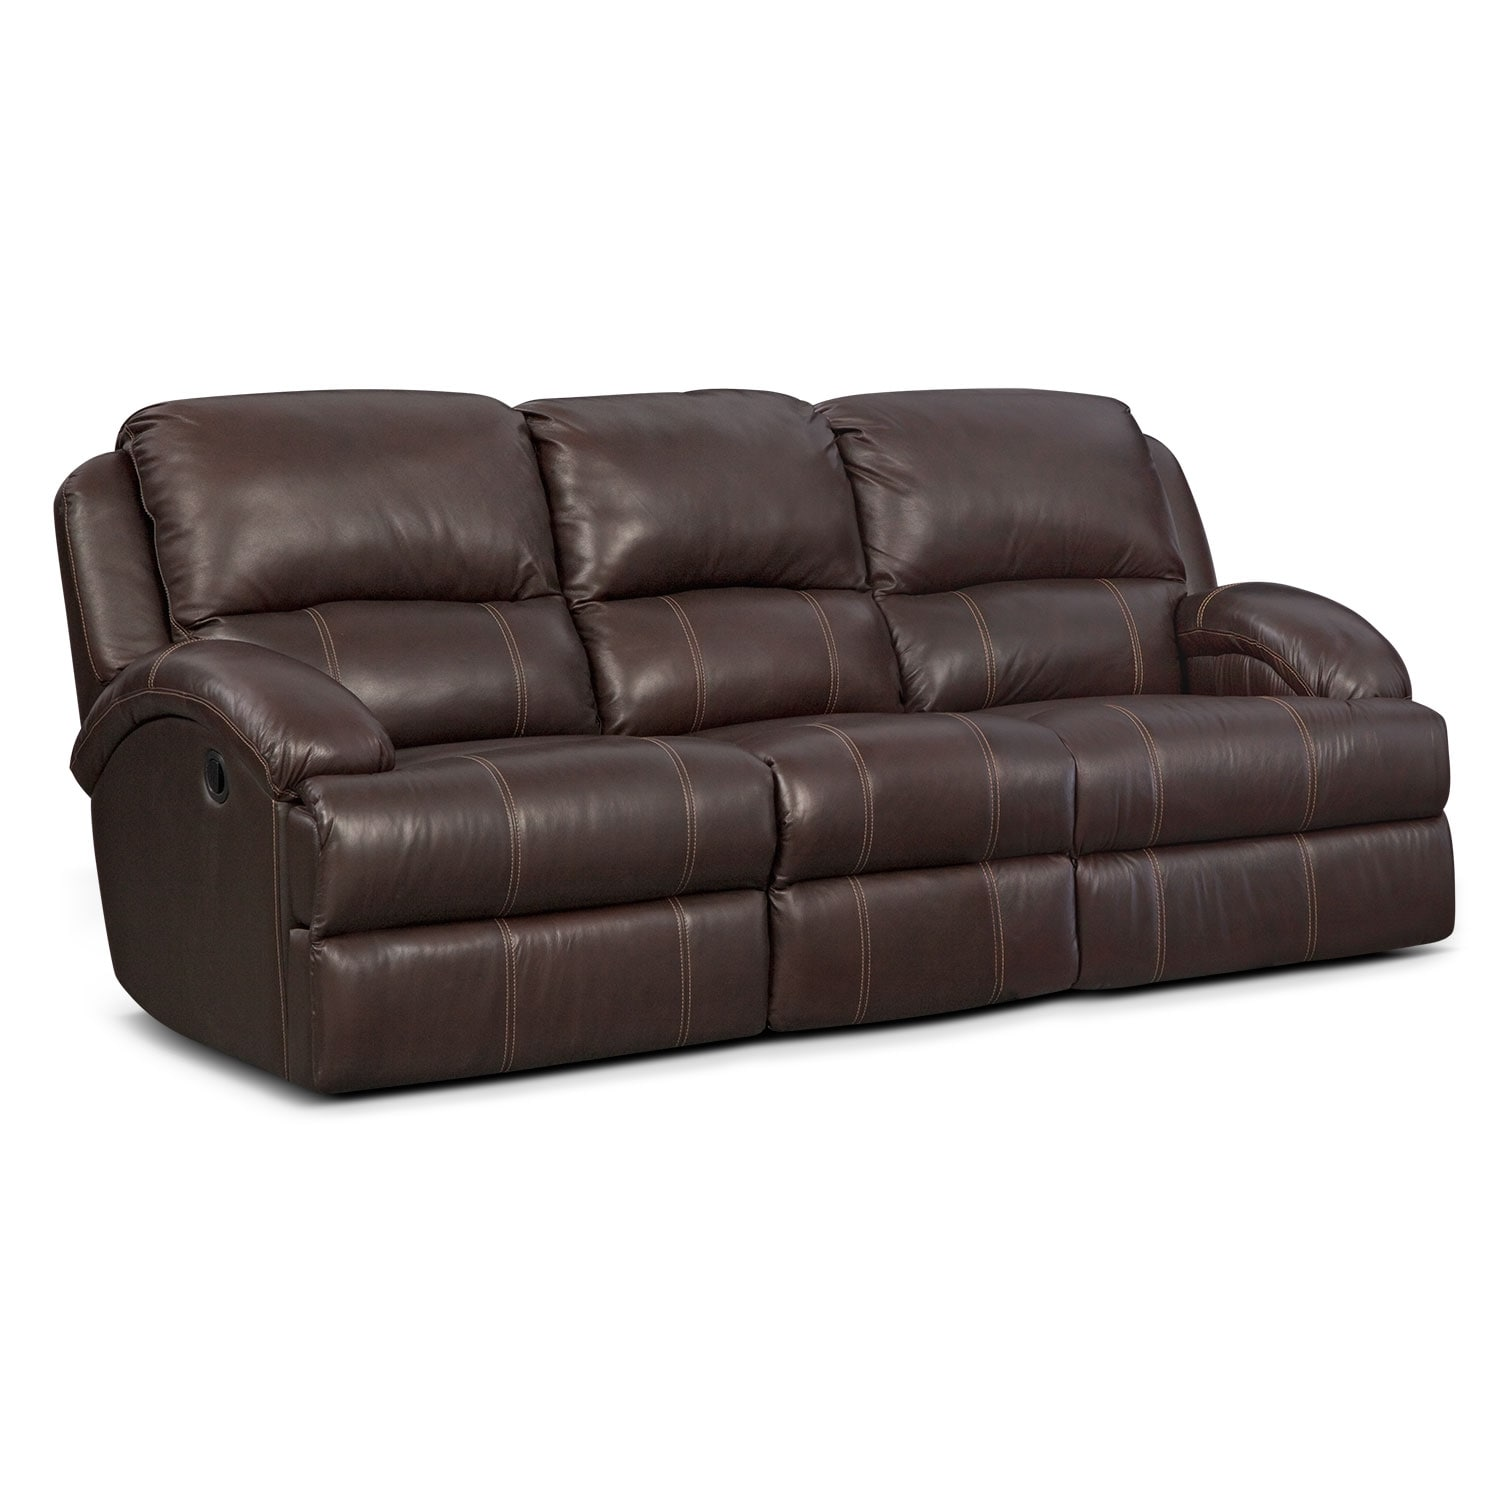 Leather Sofa Cleaning Products India